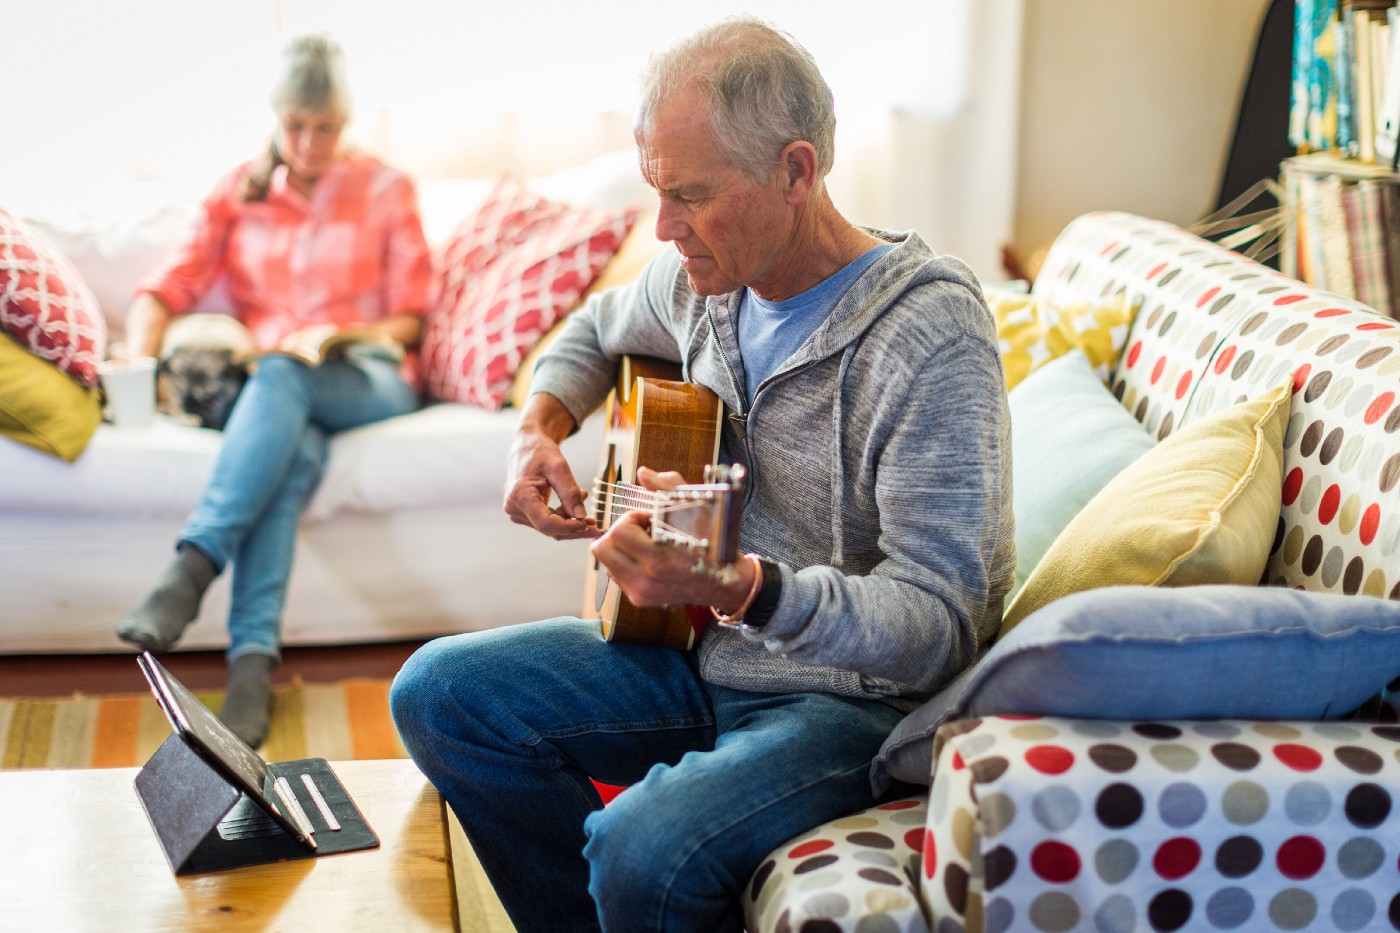 An older man learning guitar by watching an online tutorial on his tablet.